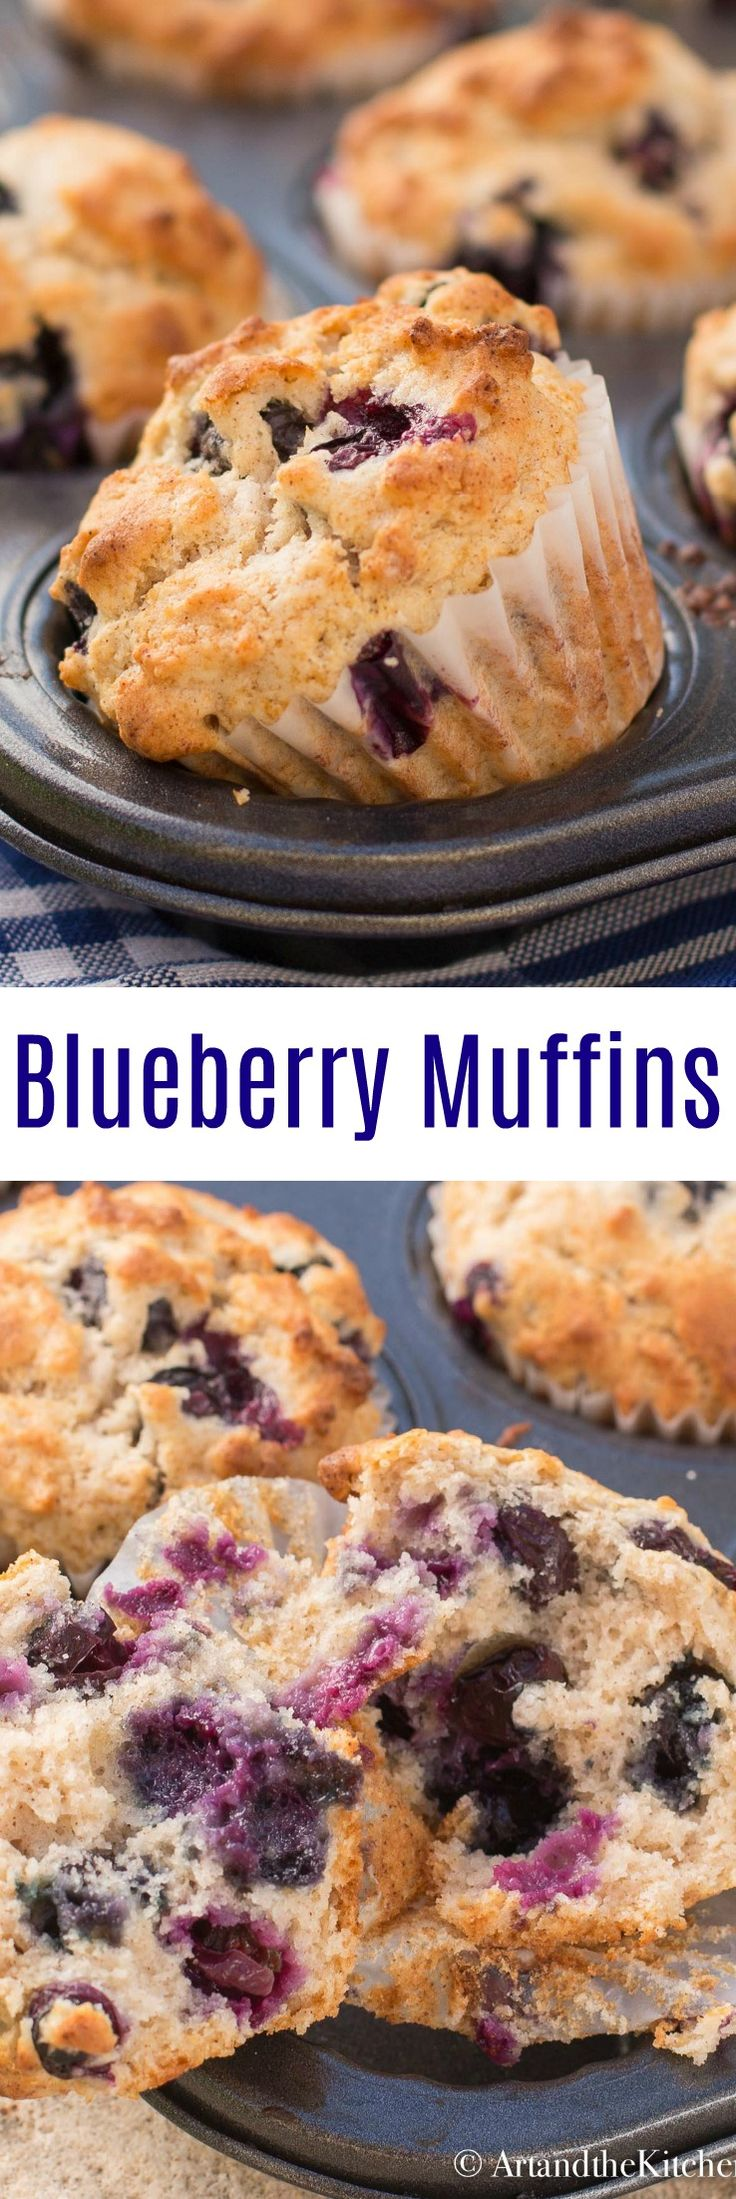 This recipe for Blueberry Muffins is buttery and moist, great for breakfast or anytime snack. #blueberrymuffins #muffins #blueberry